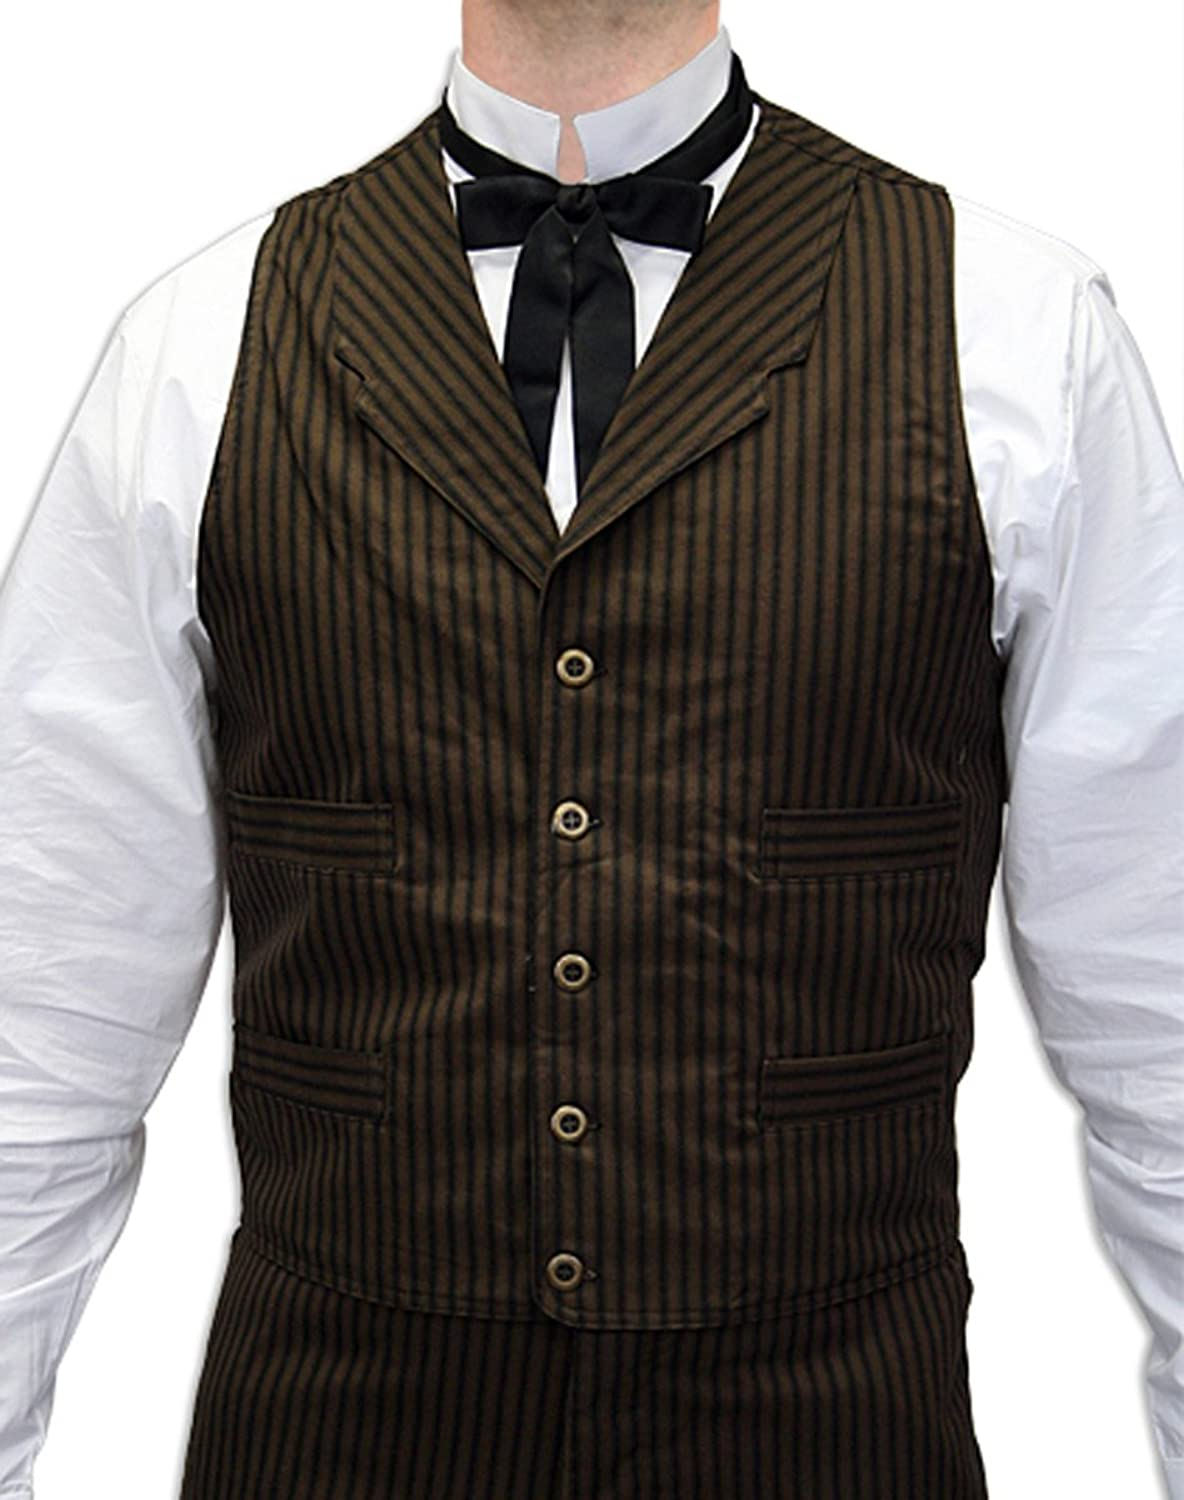 Men's Vintage Vests, Sweater Vests  Mens Ferndale Cotton Dress Vest $59.95 AT vintagedancer.com